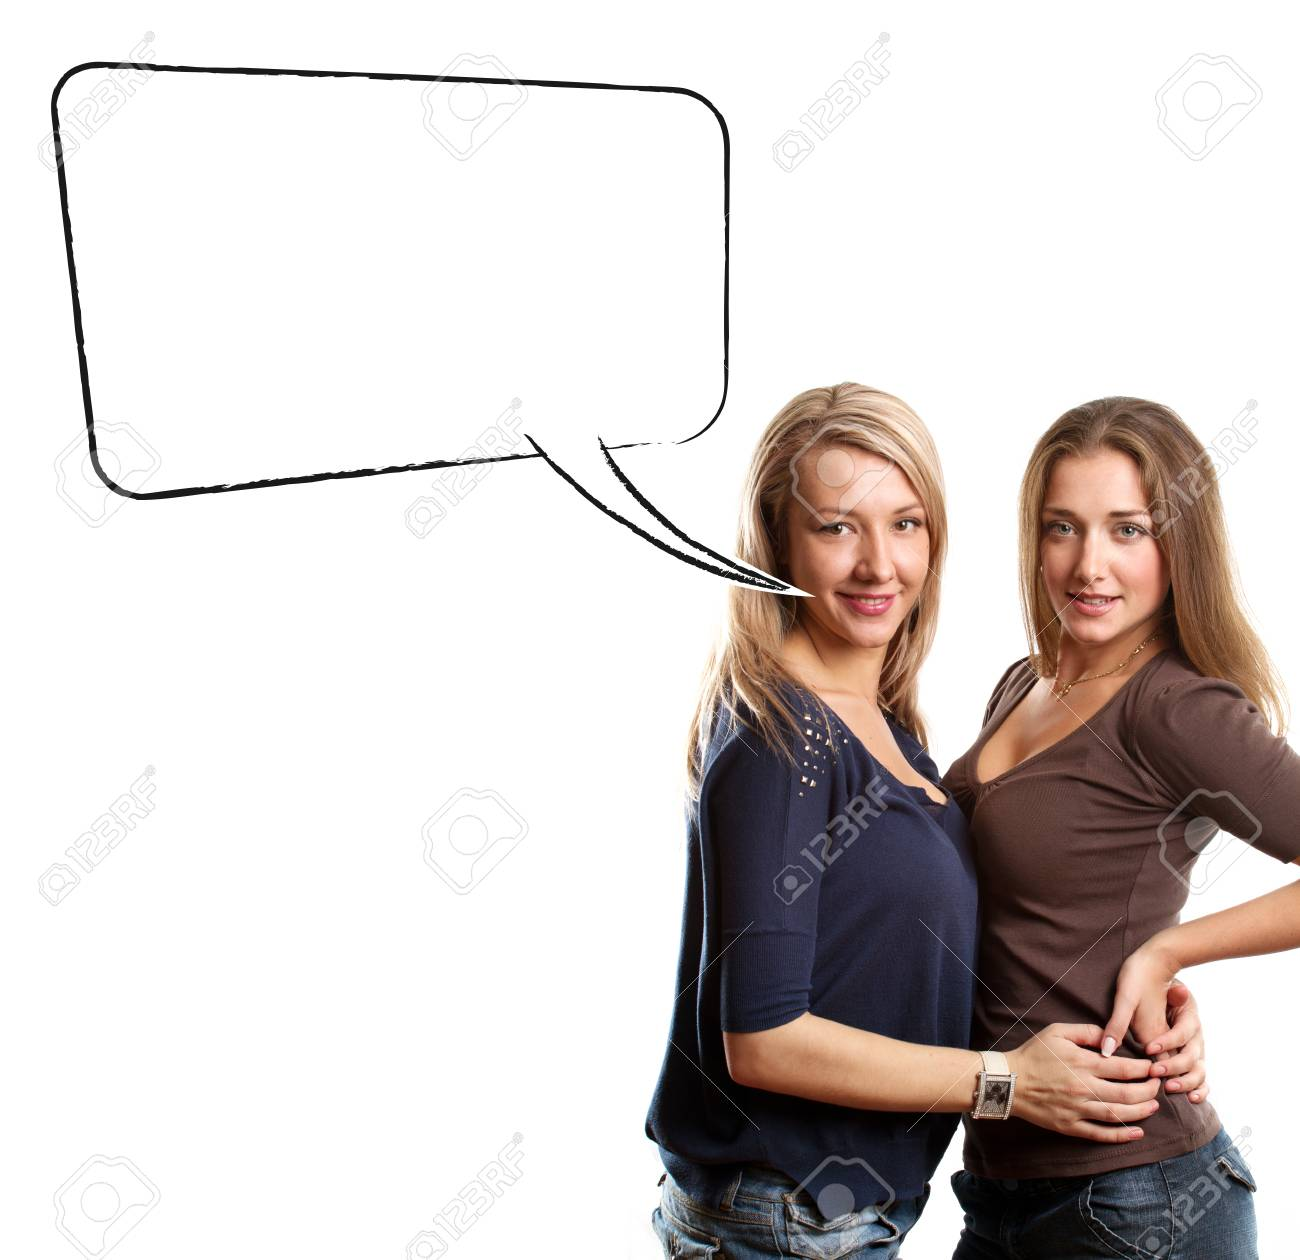 Gay Couple Two Women Looking On Camera With Speech Bubble Stock Photo 25026126